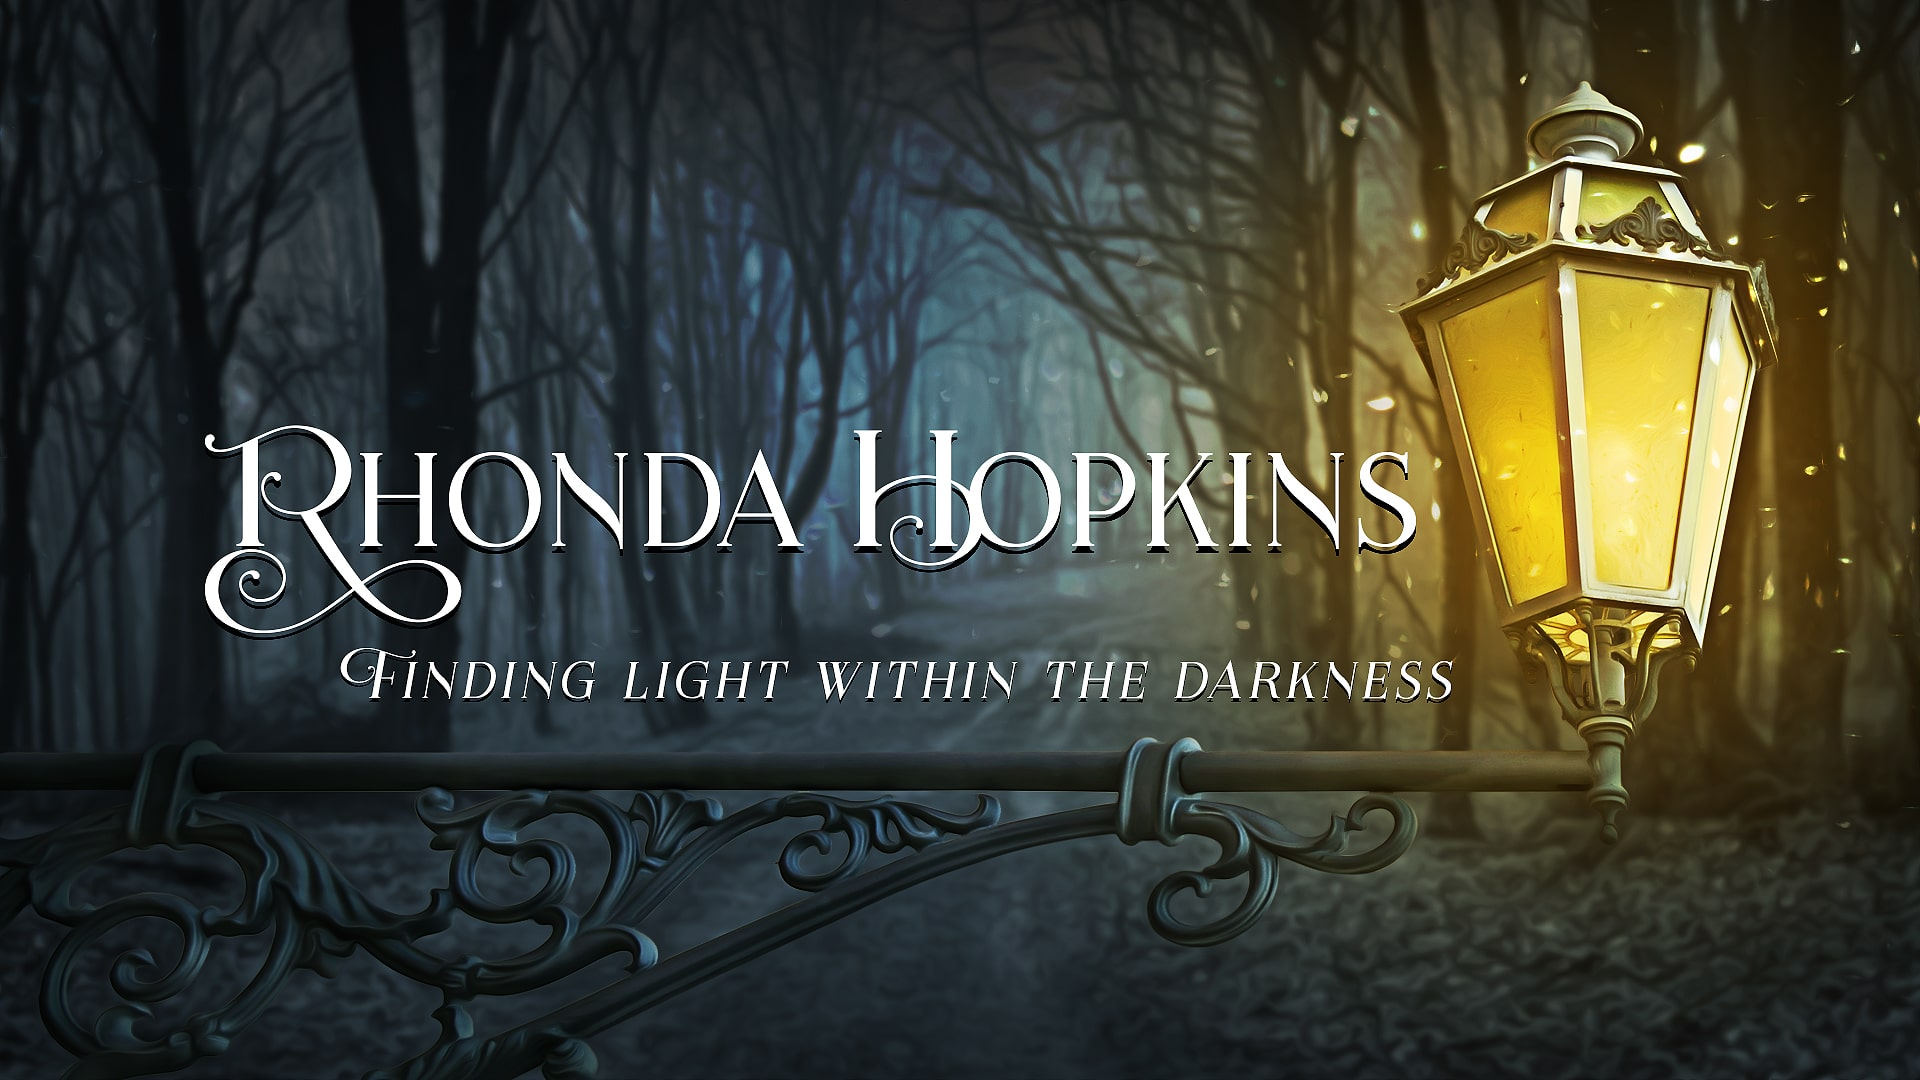 Rhonda Hopkins, fiction, author, dystopian, apocalyptic, science fiction, mystery, cozy, paranormal, urban fantasy, middle grade, young adult